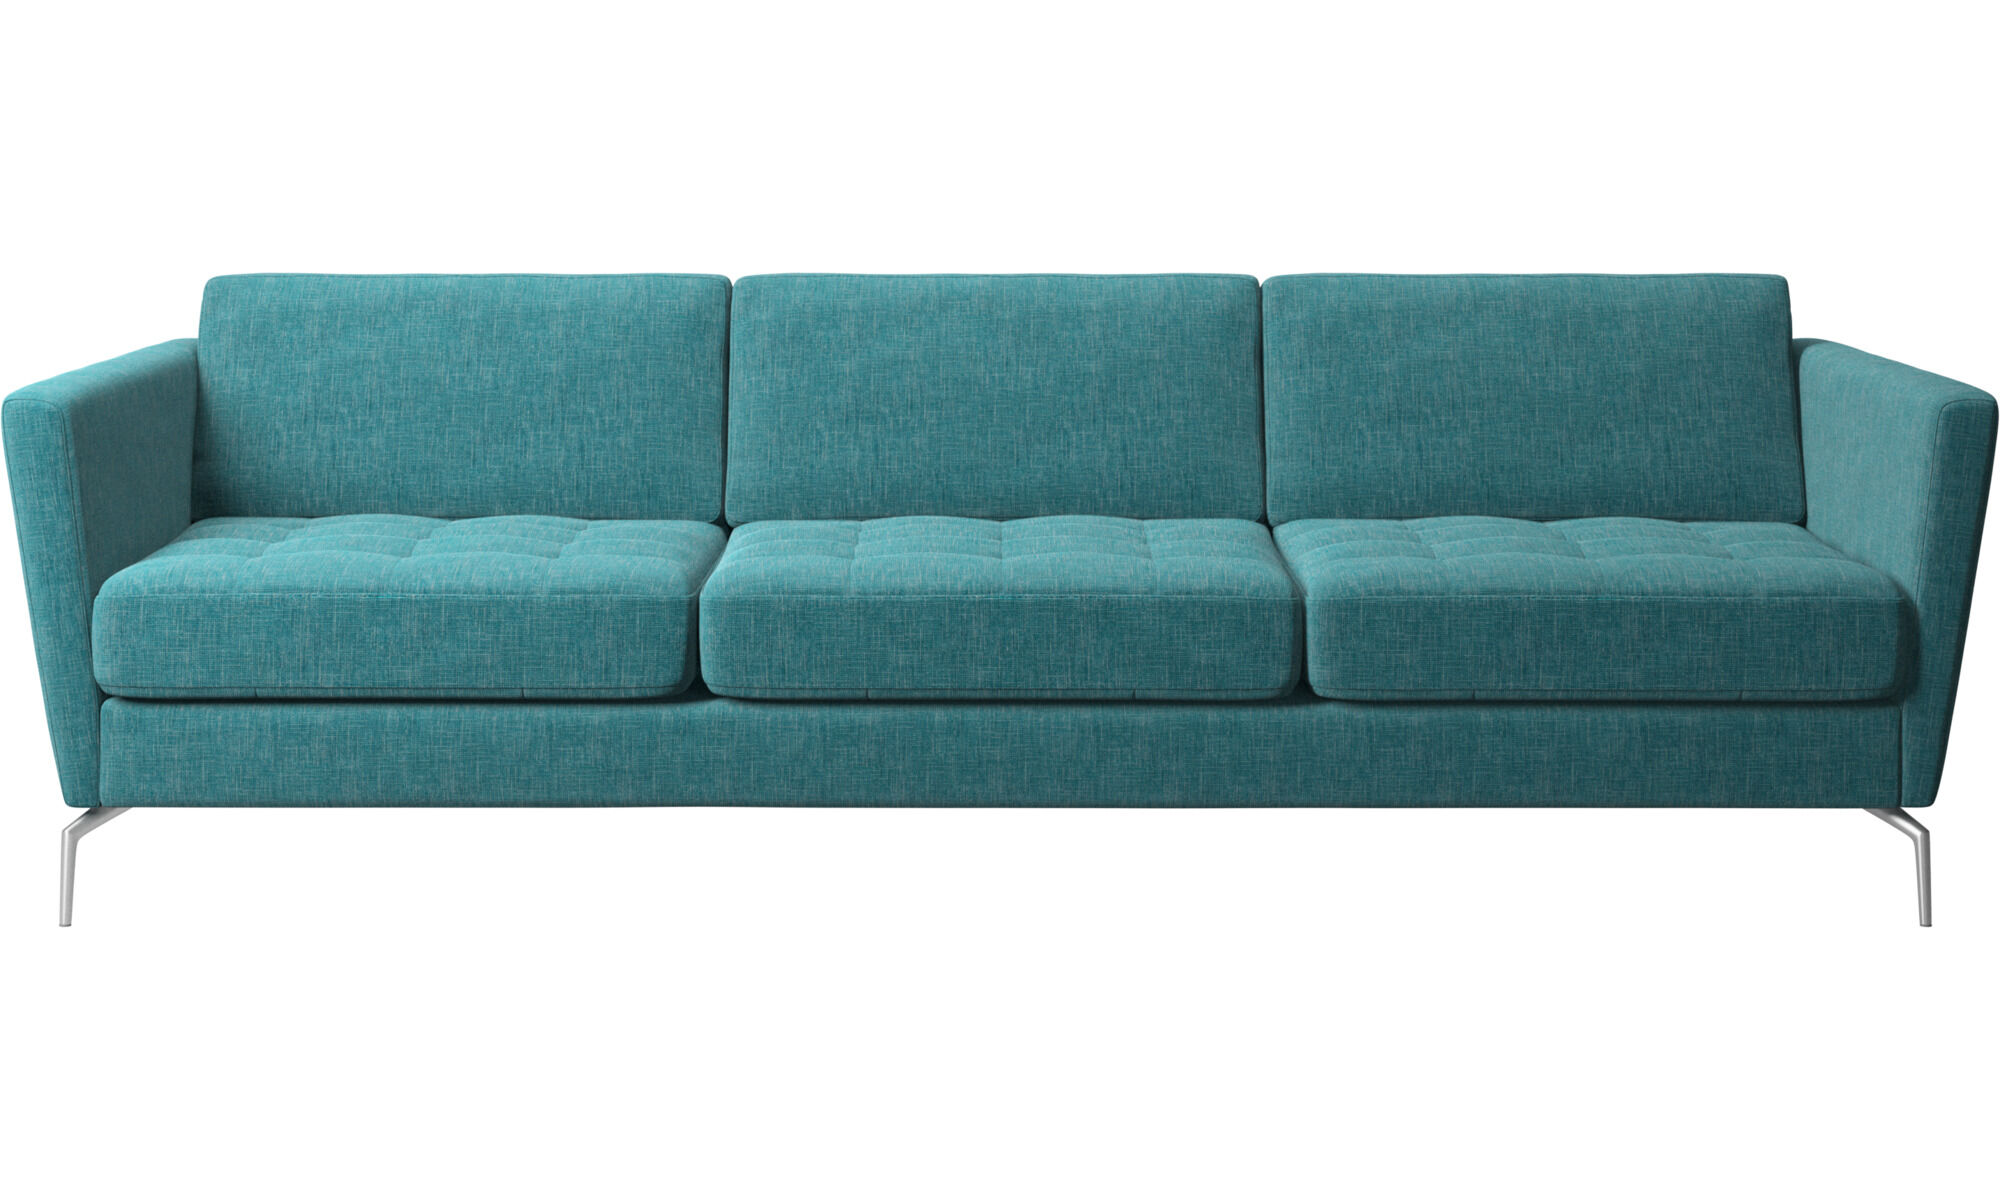 Elegant 3 Seater Sofas   Osaka Sofa, Tufted Seat   Blue   Fabric